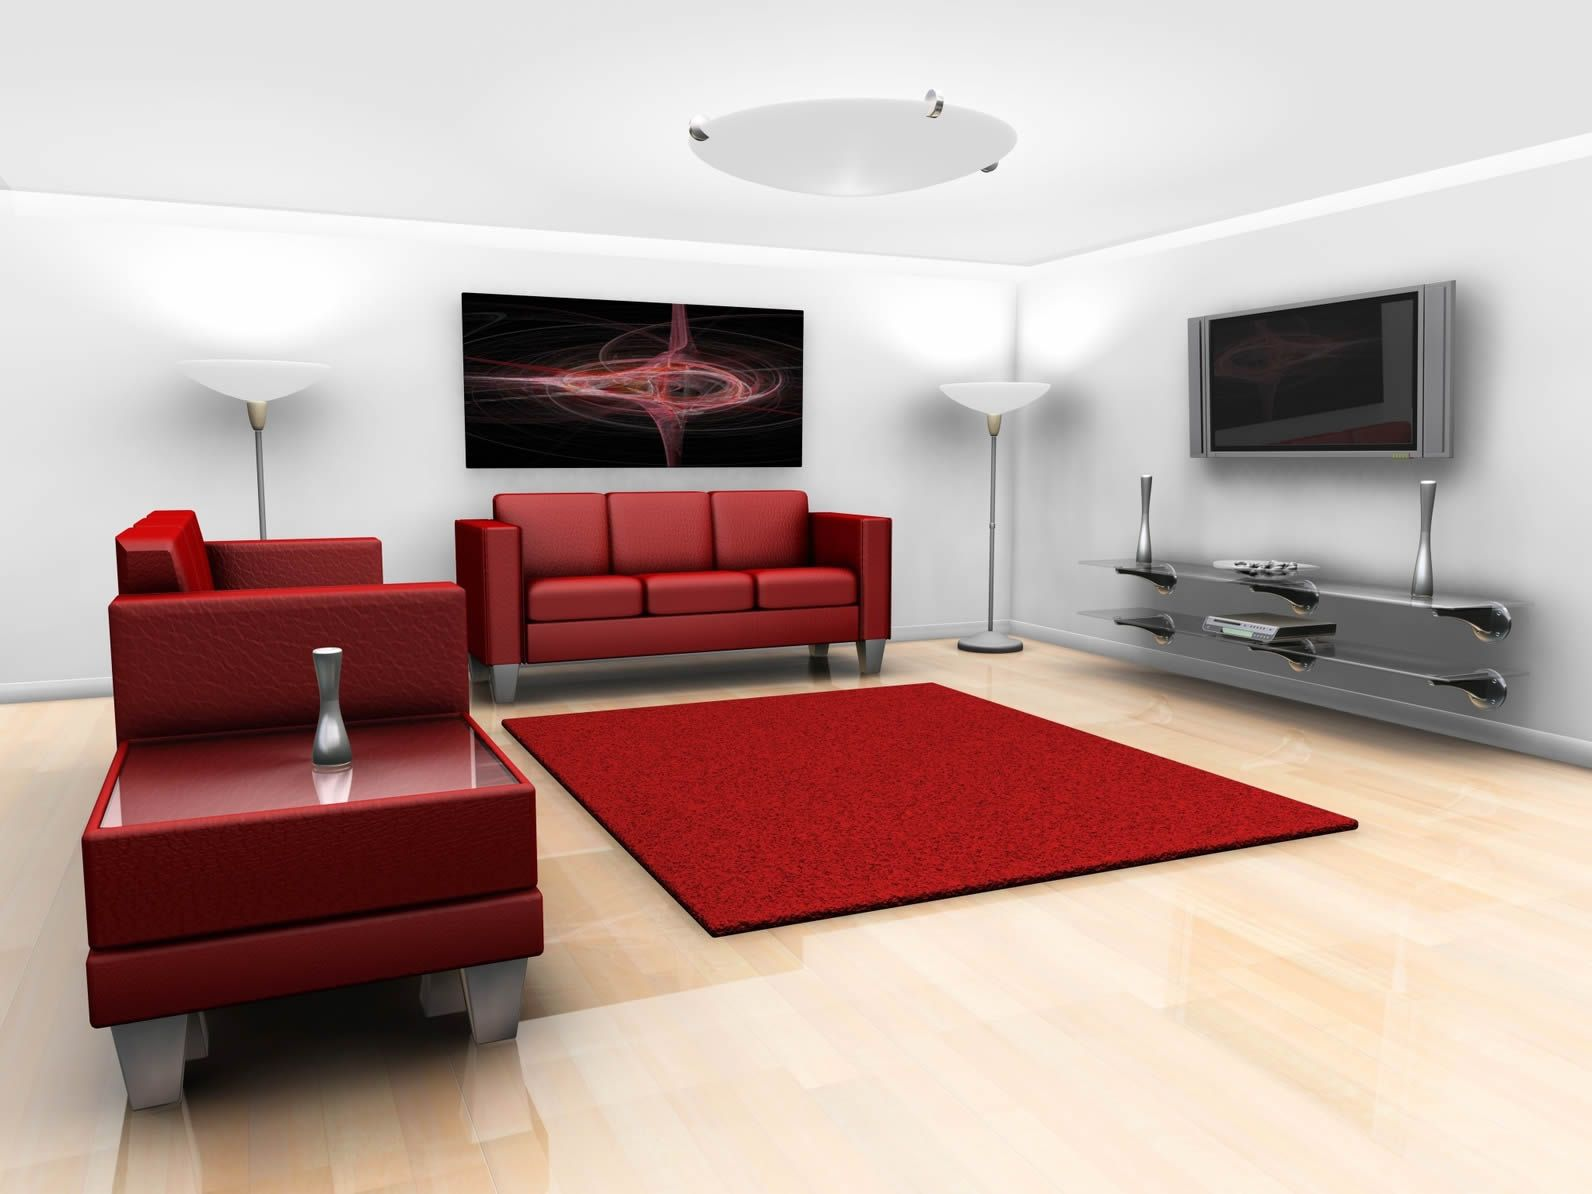 HomeOwnerBuff Red Sofa And Couch Also Rug Kids playroom